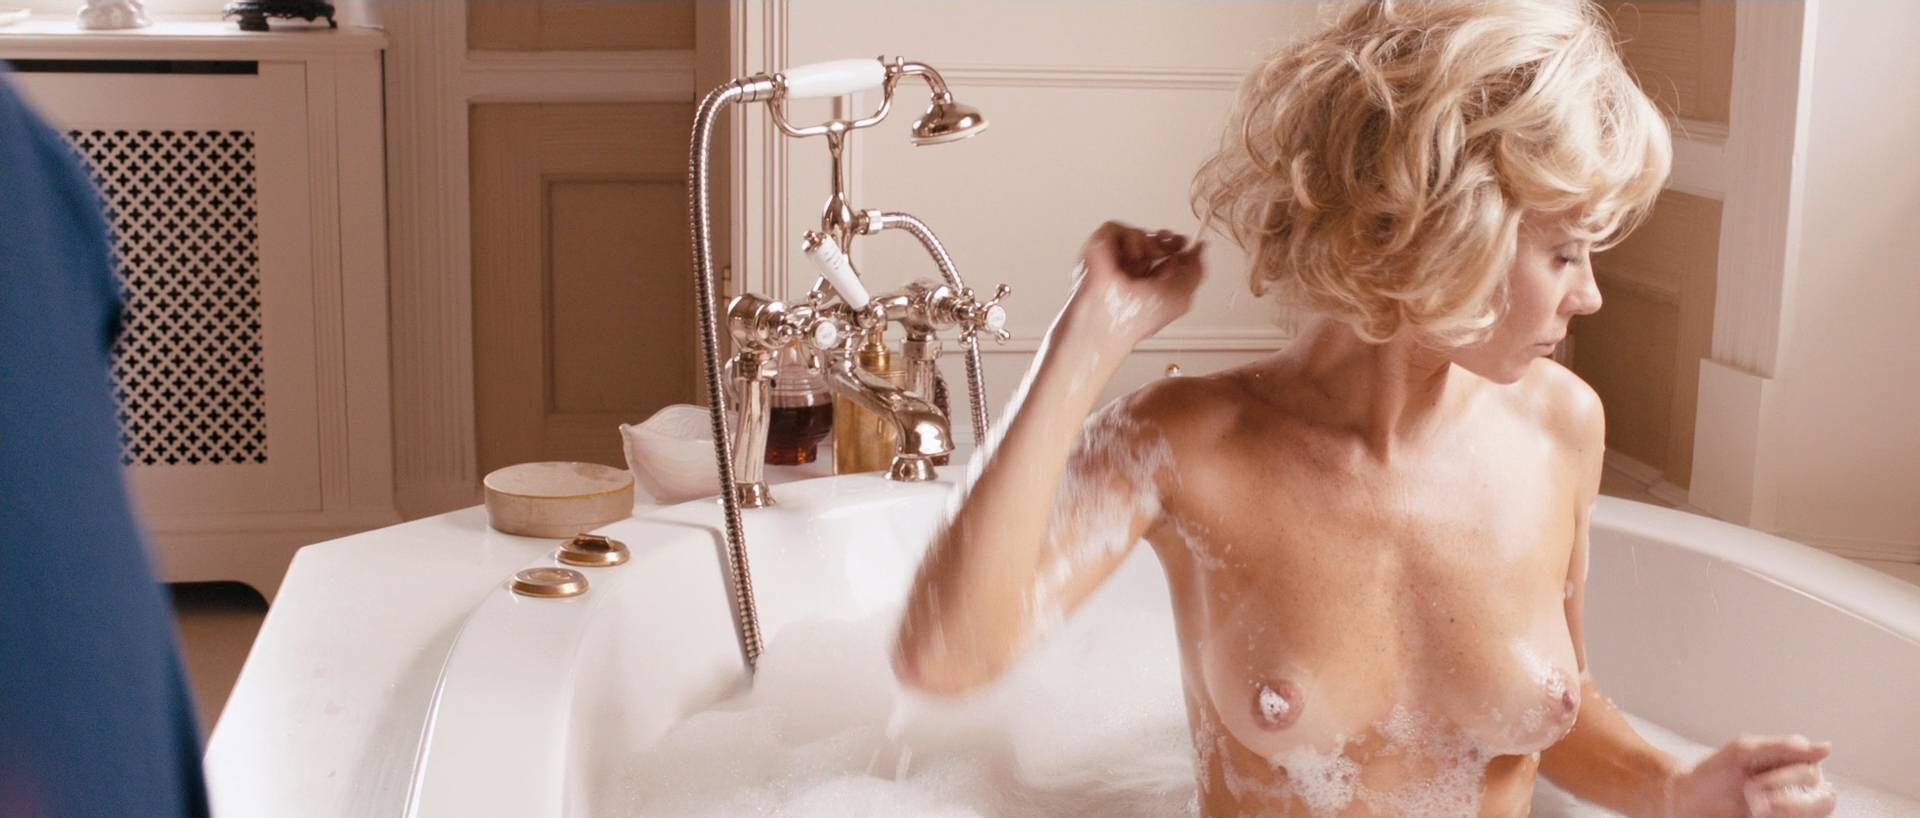 Anna-Friel-nude-topless-Tamsin-Egerton-nude-various-actress-nude-full-frontal-The-Look-of-Love-2013-HD-1080p-19.jpg